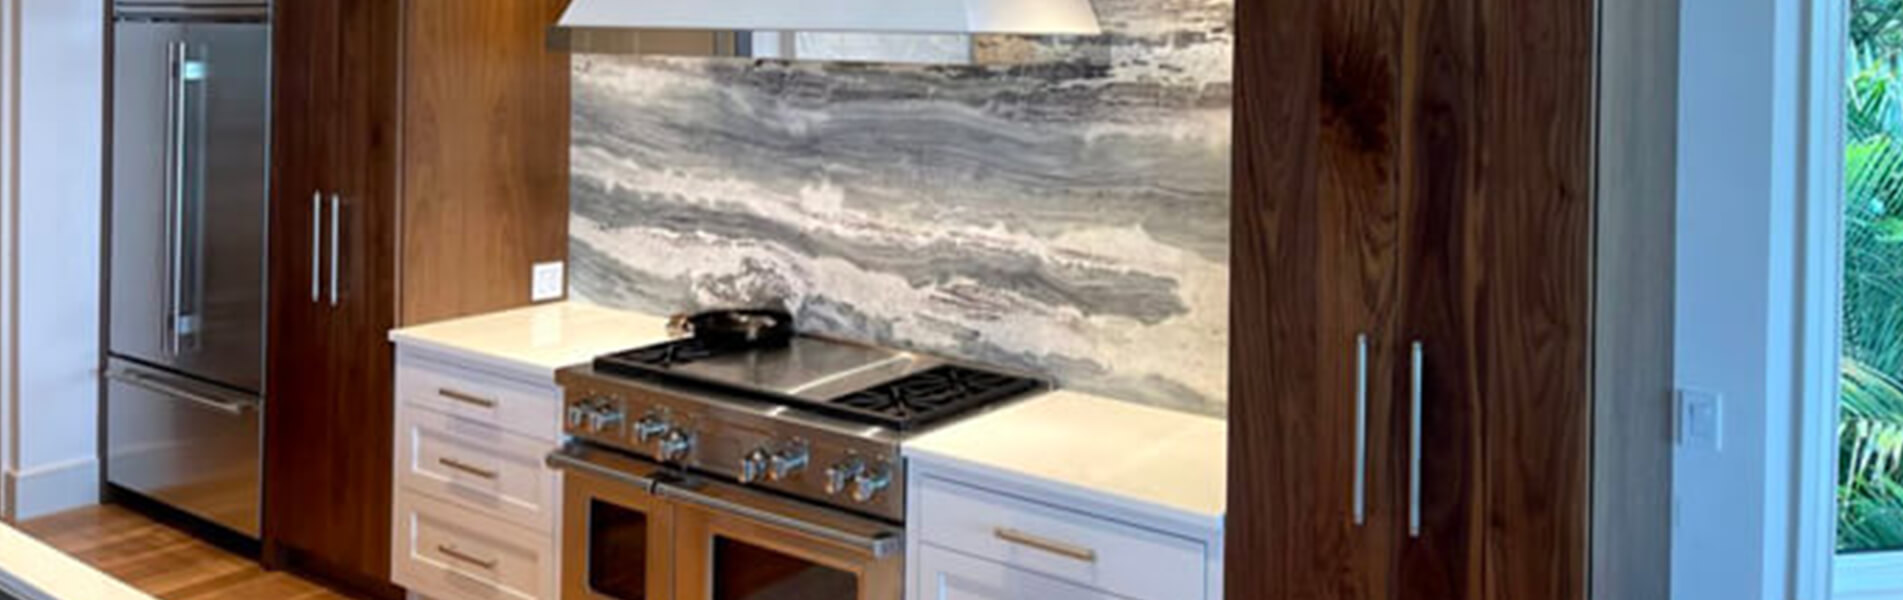 Tequesta General Contractor, Home Remodeling Contractor and Kitchen Remodeling Contractor